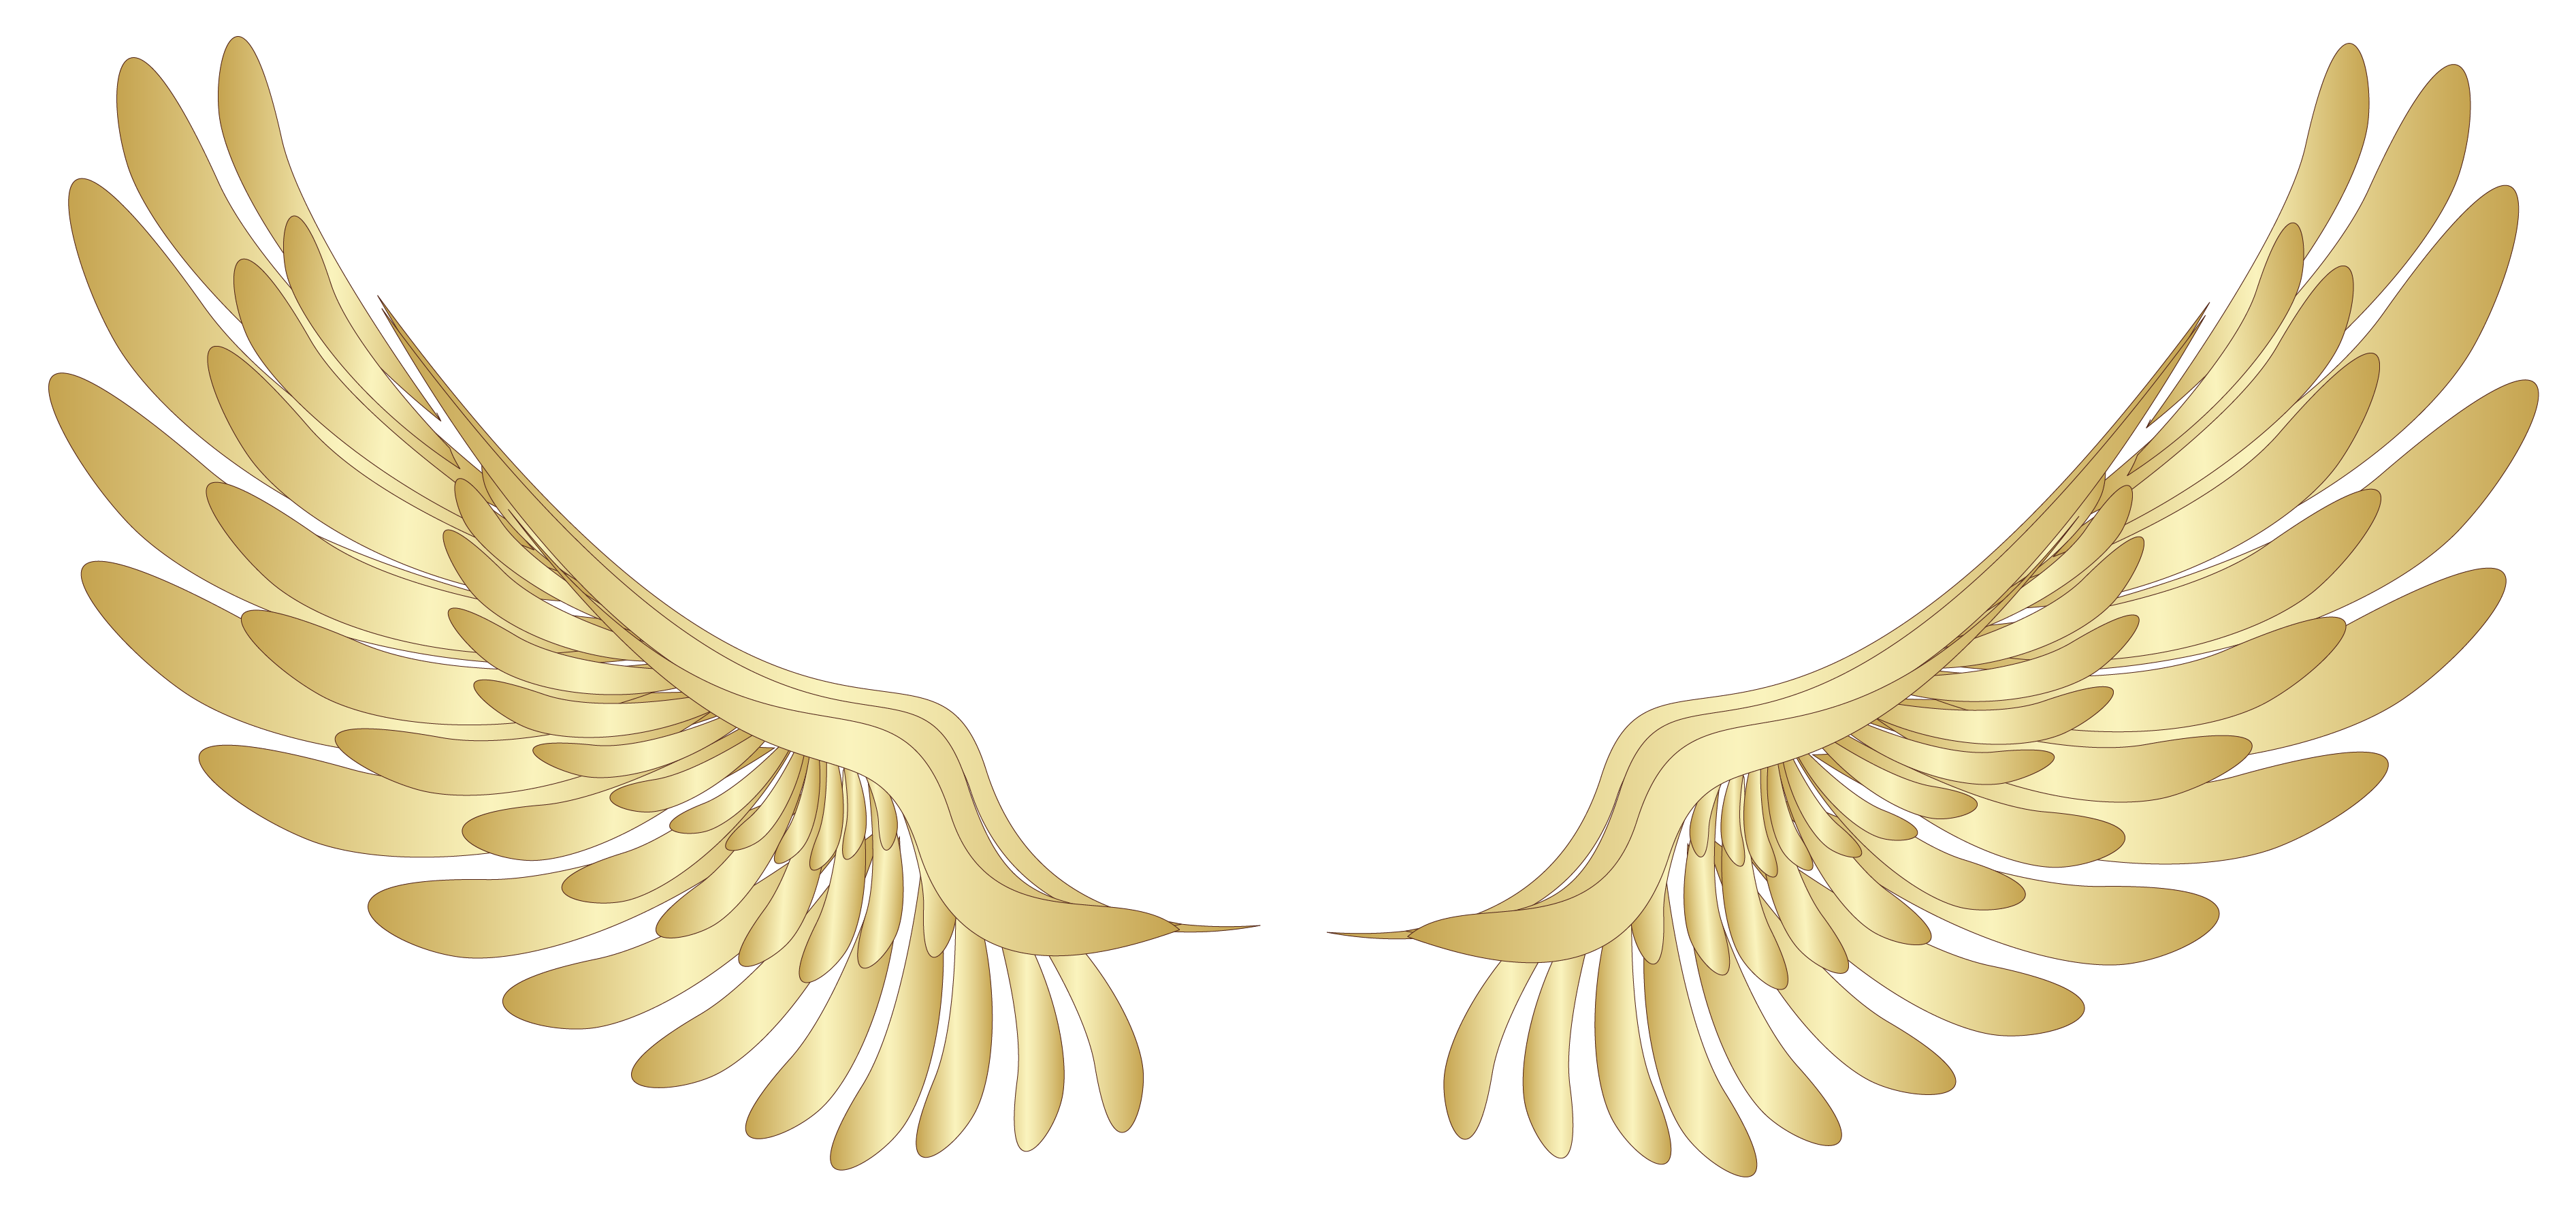 Wing clipart wing hd. Golden wings decor png